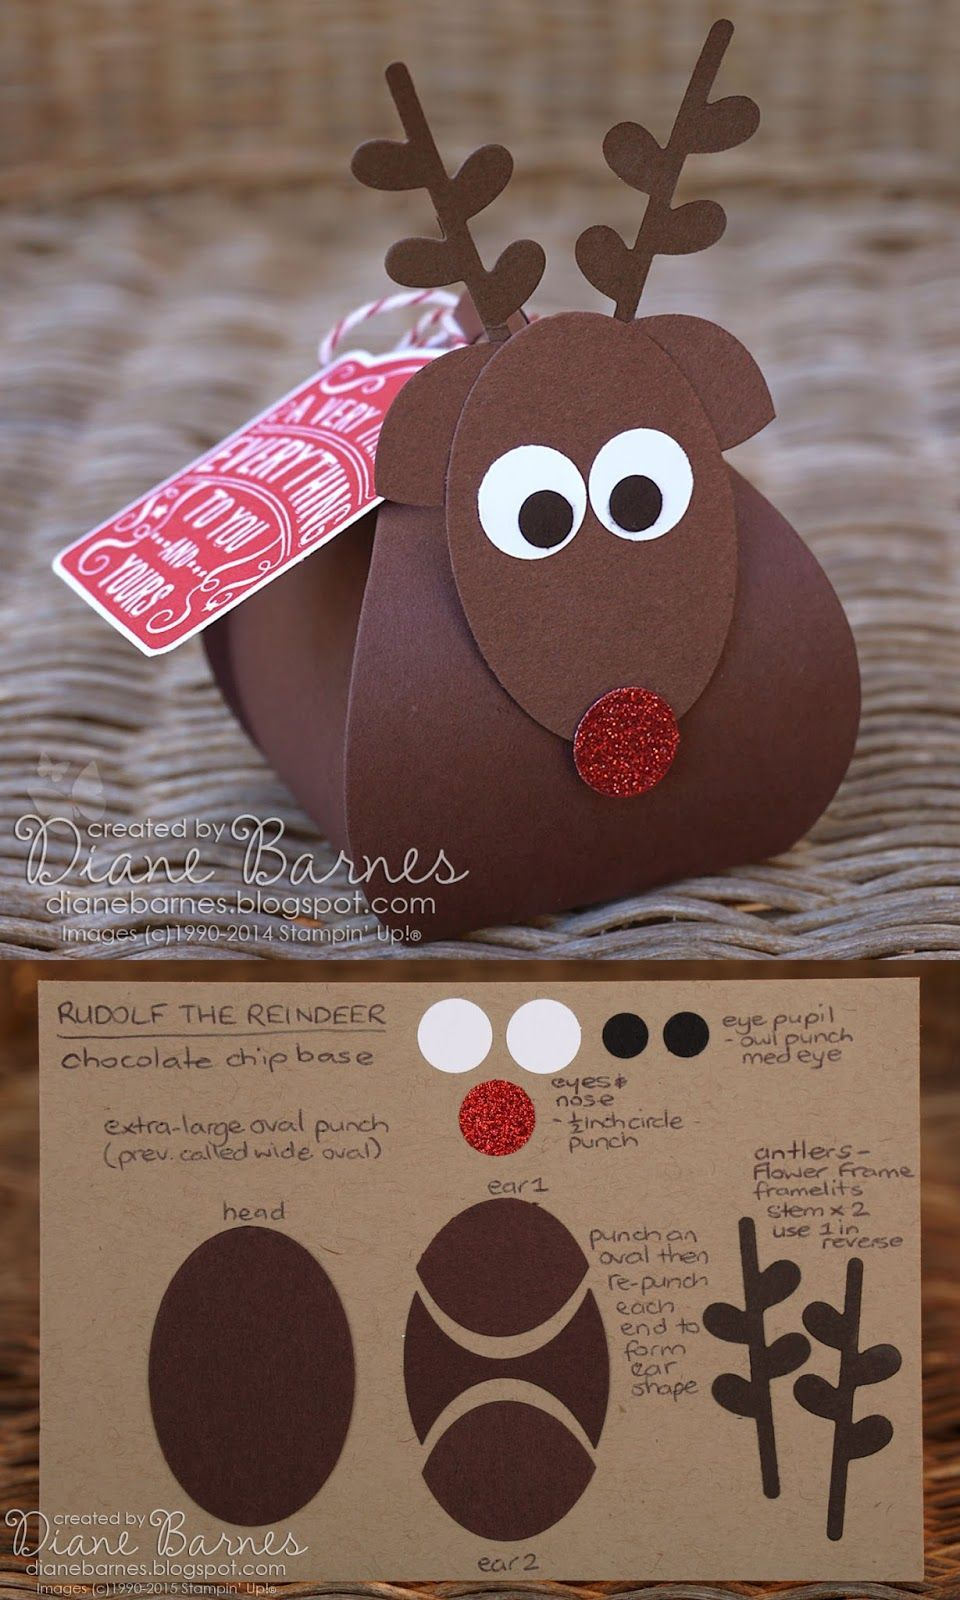 Christmas curvy keepsake boxes Christmas reindeer boxes & instructions using Stampin Up Curvy keepsake box die & punches. By Di Barnes curvy keepsake boxes Christmas reindeer boxes & instructions using Stampin Up Curvy keepsake box die & punches. By Di BarnesChristmas reindeer boxes & instructions using Stampin Up Curvy keepsake box die & punches. By Di Barnes